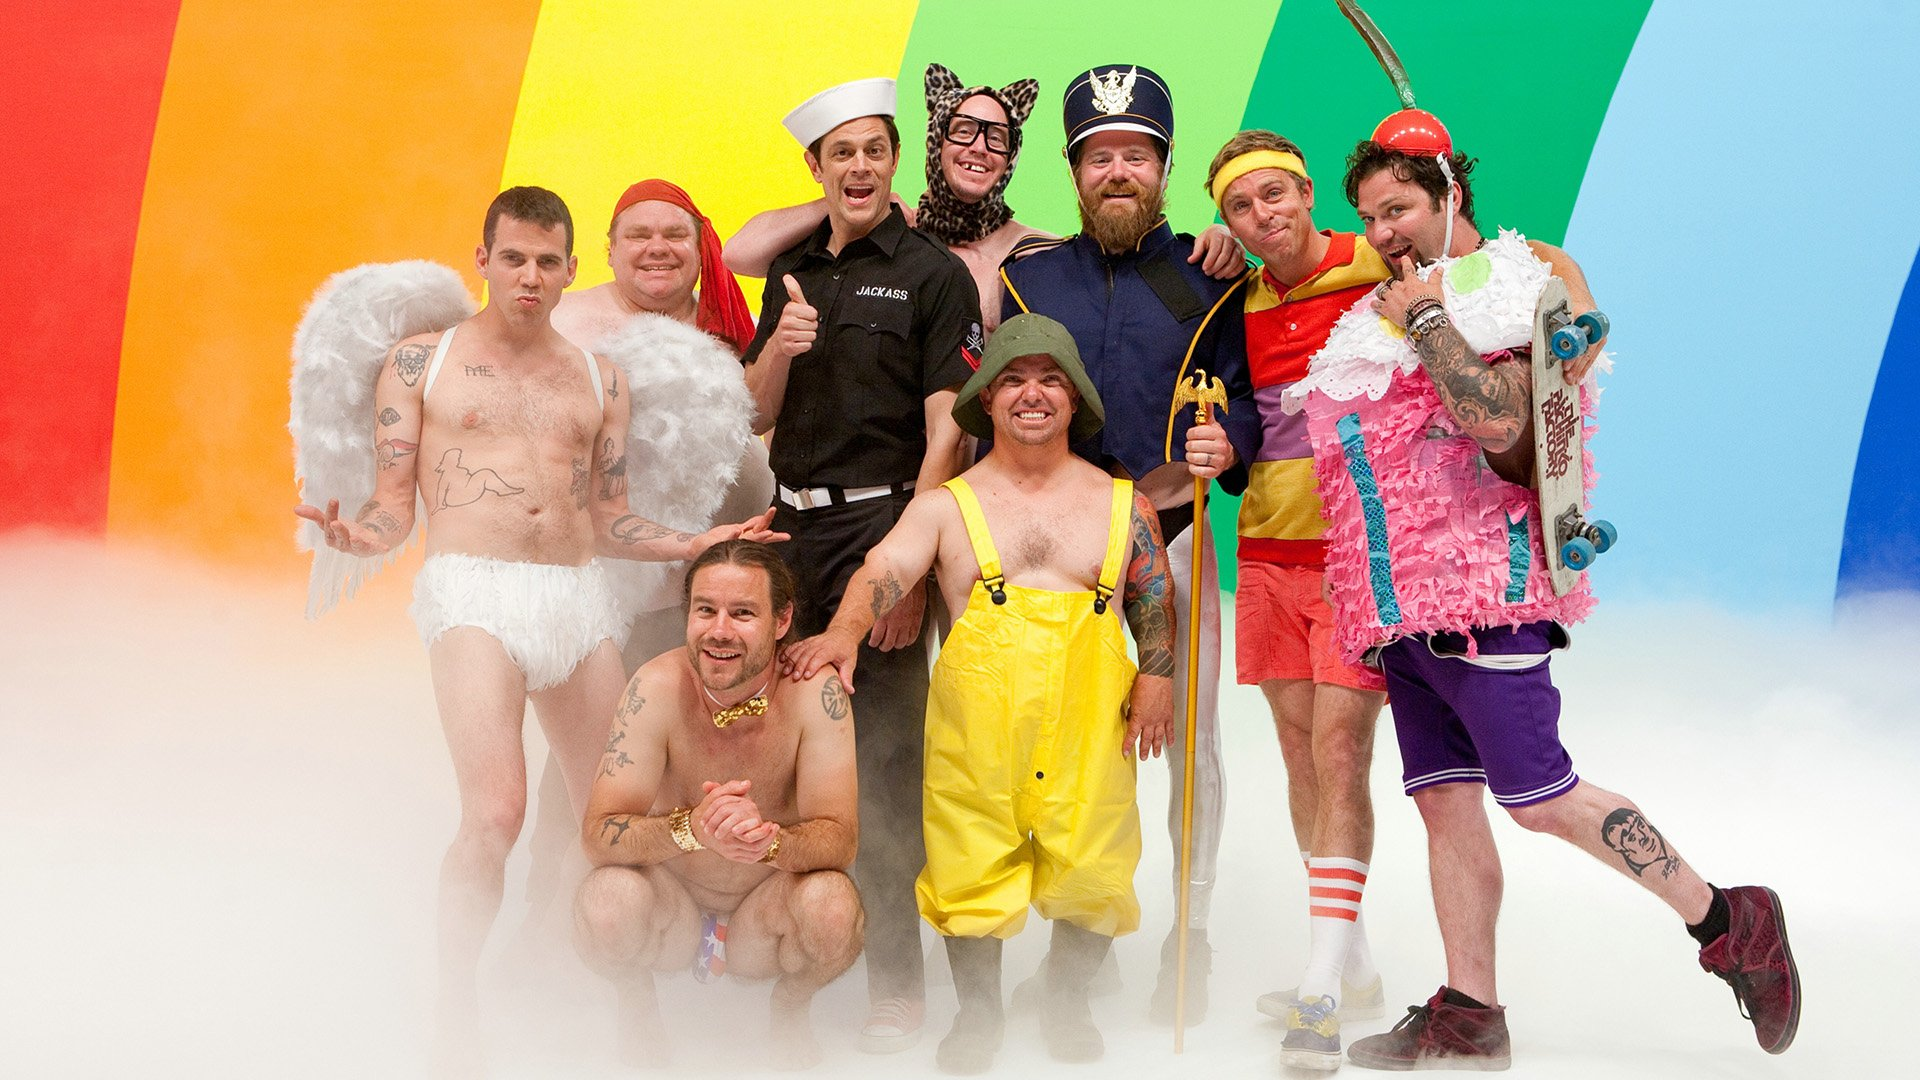 Jackass The Movie Full Screen Special Edition Movie HD free download 720p